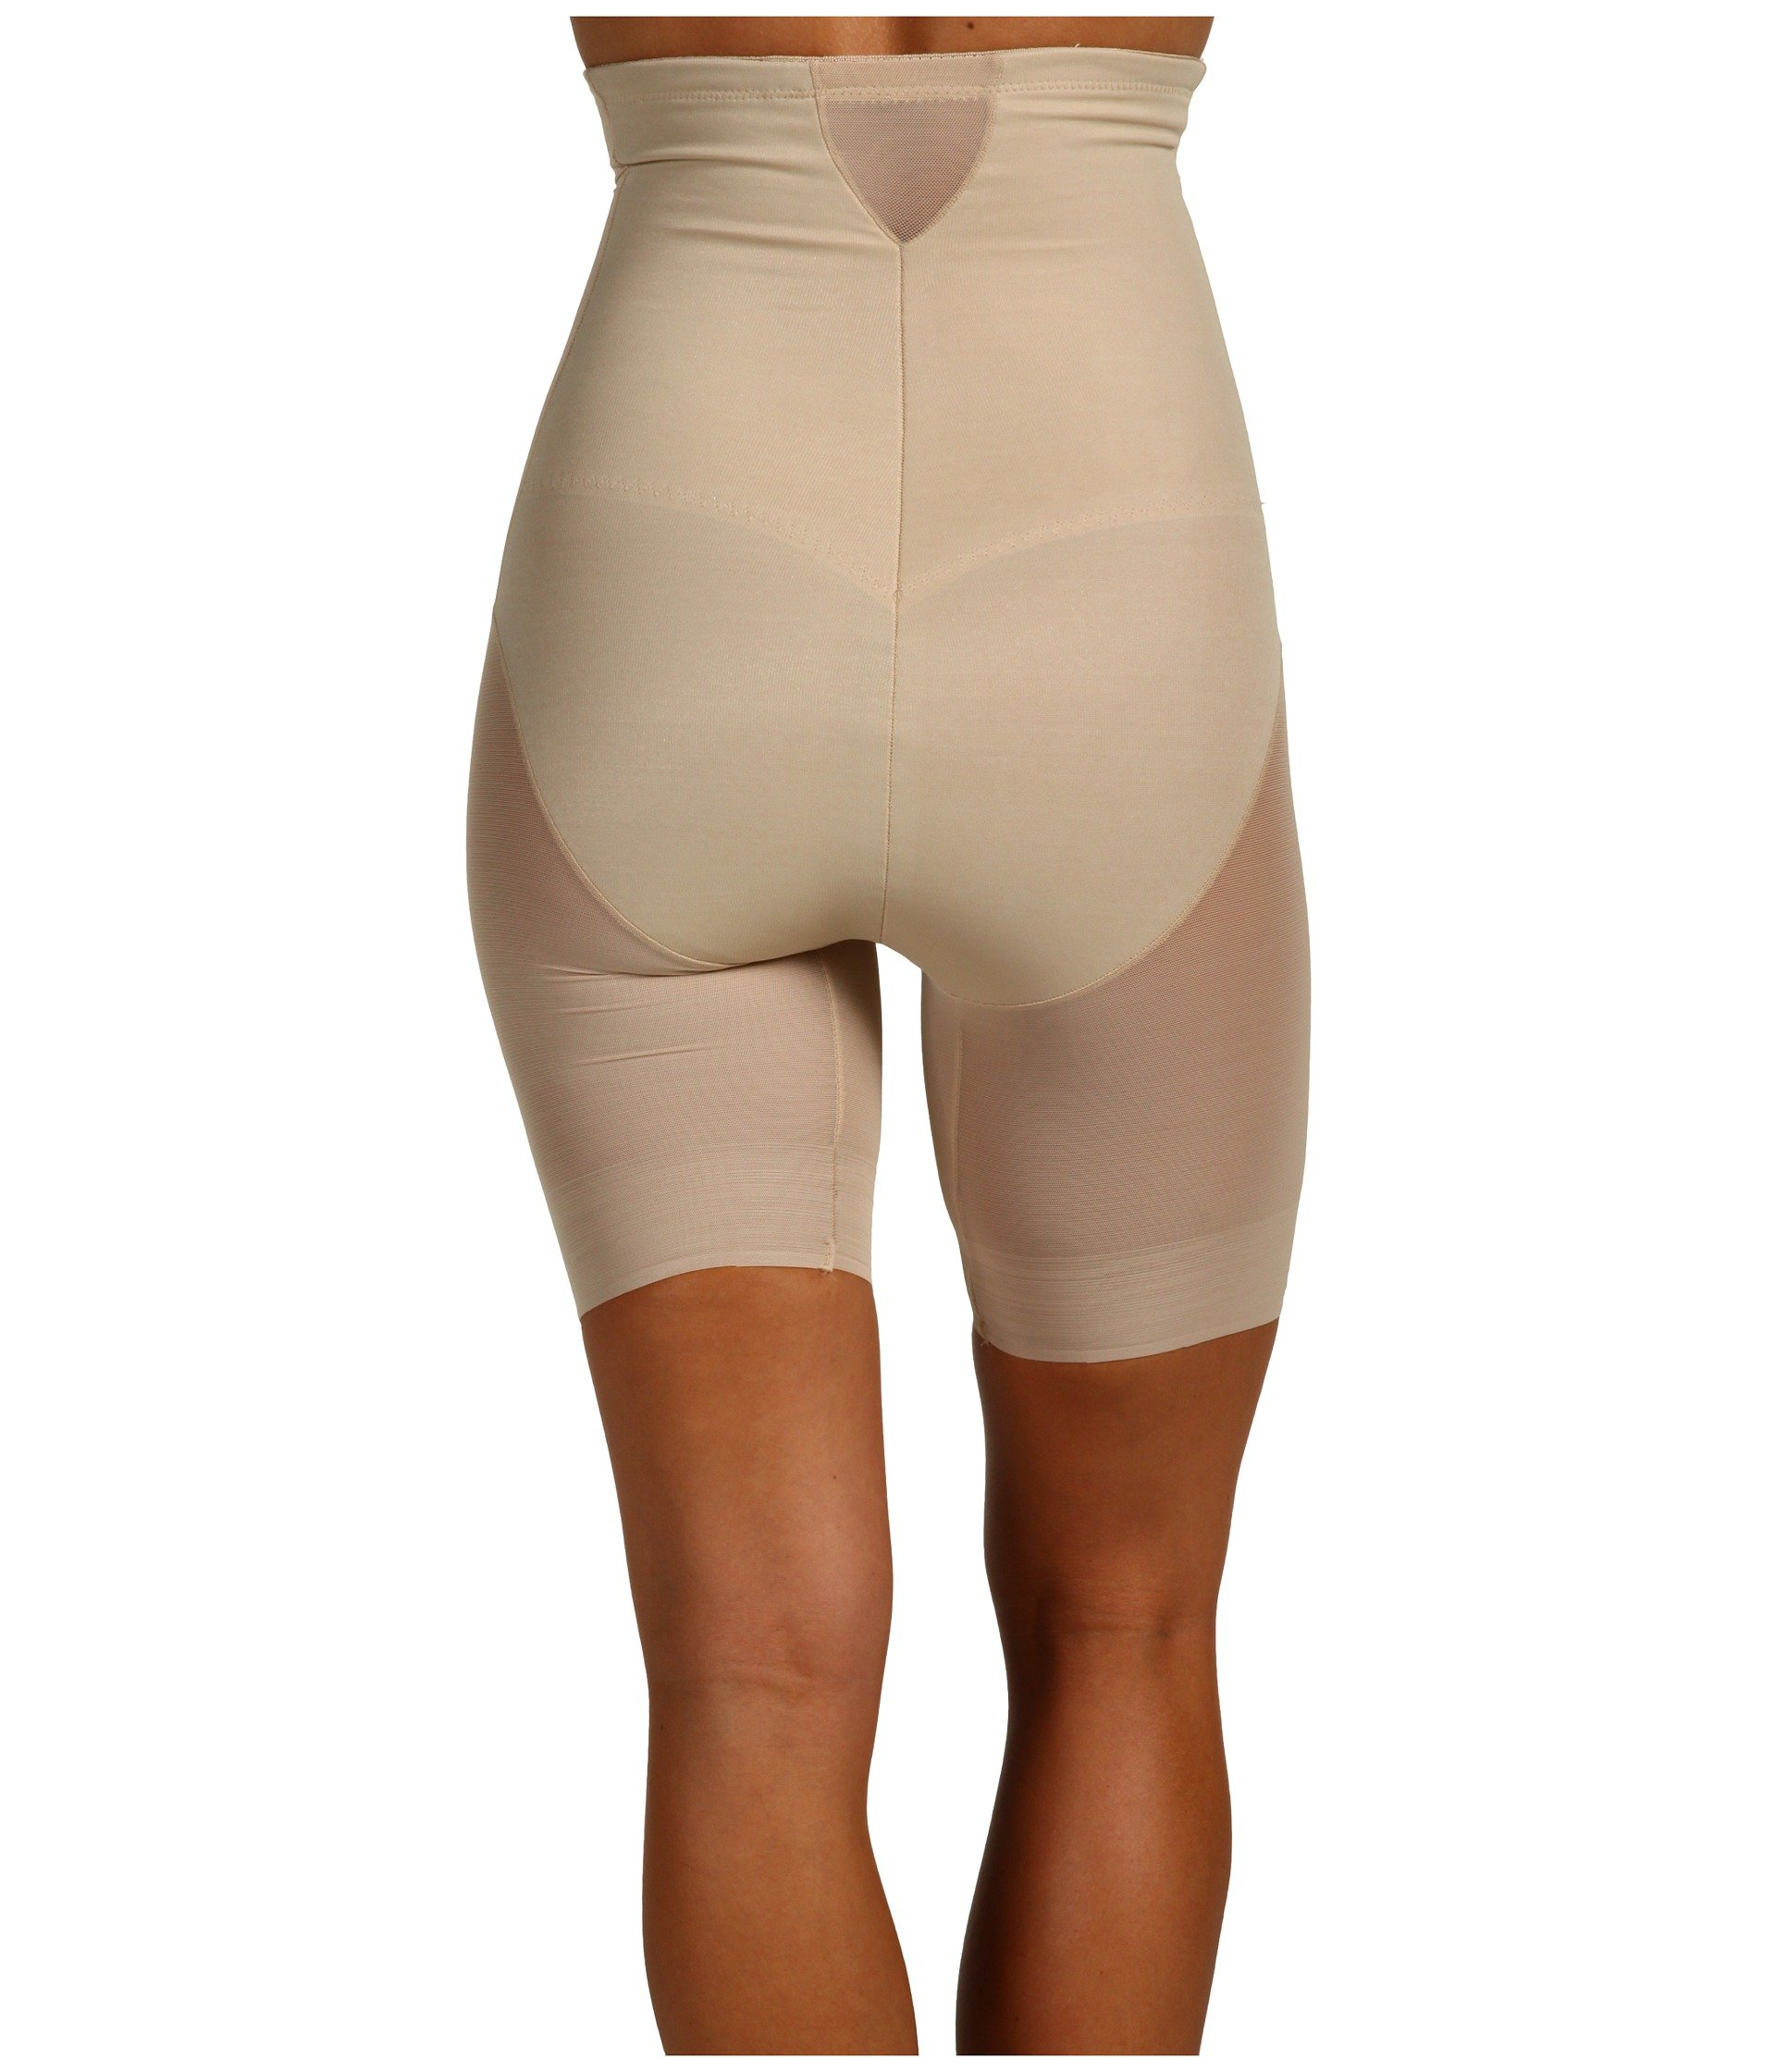 Miraclesuit Shapewear Extra Firm Sexy Sheer Shaping Hi ...